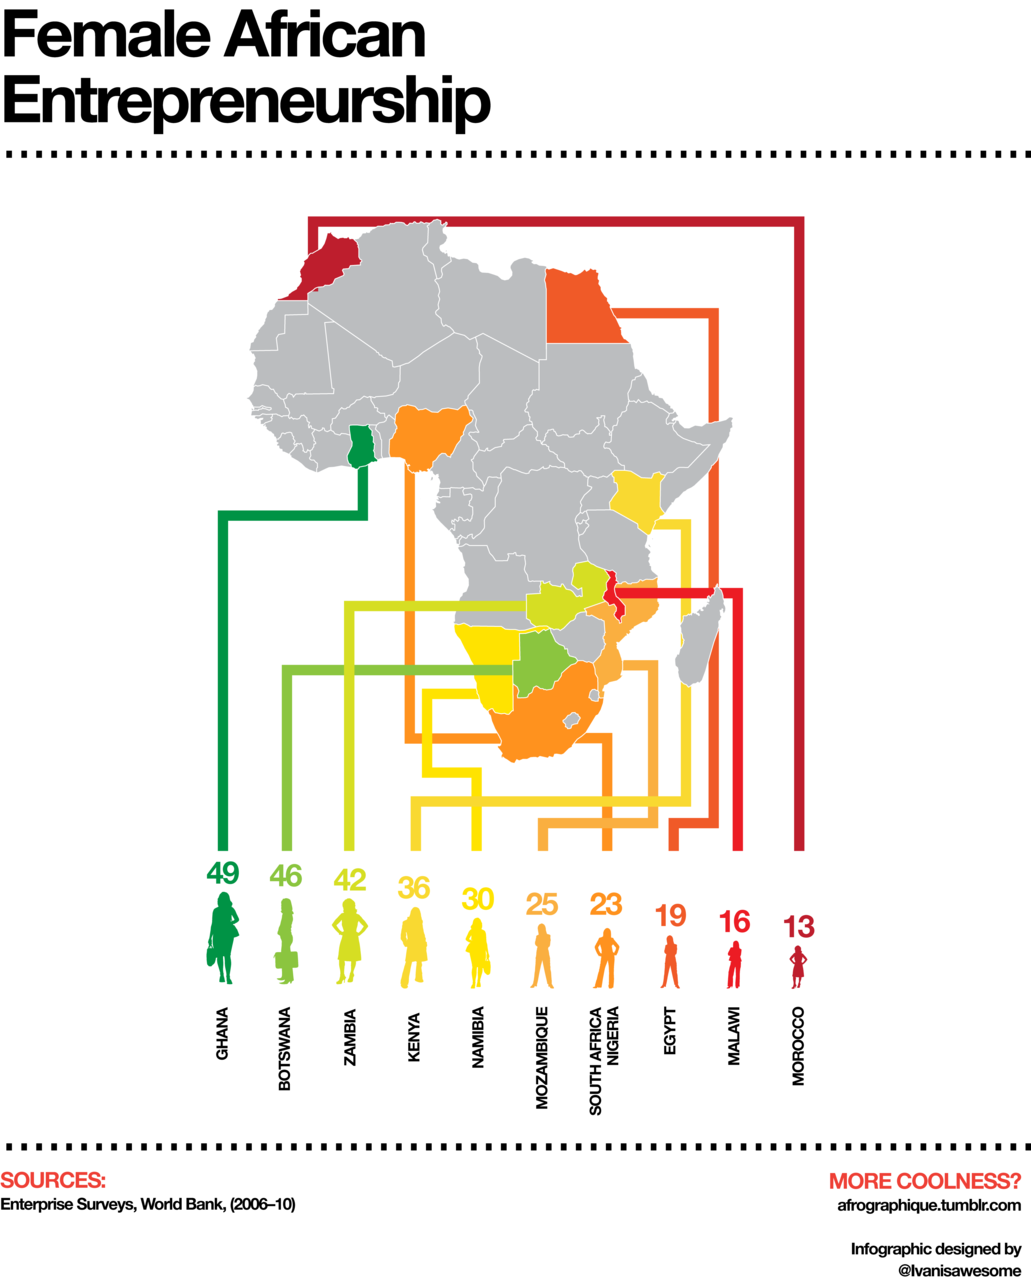 An infographic depicting the percentage share of formal firms that are owned by women in Africa. Data from the World Bank.